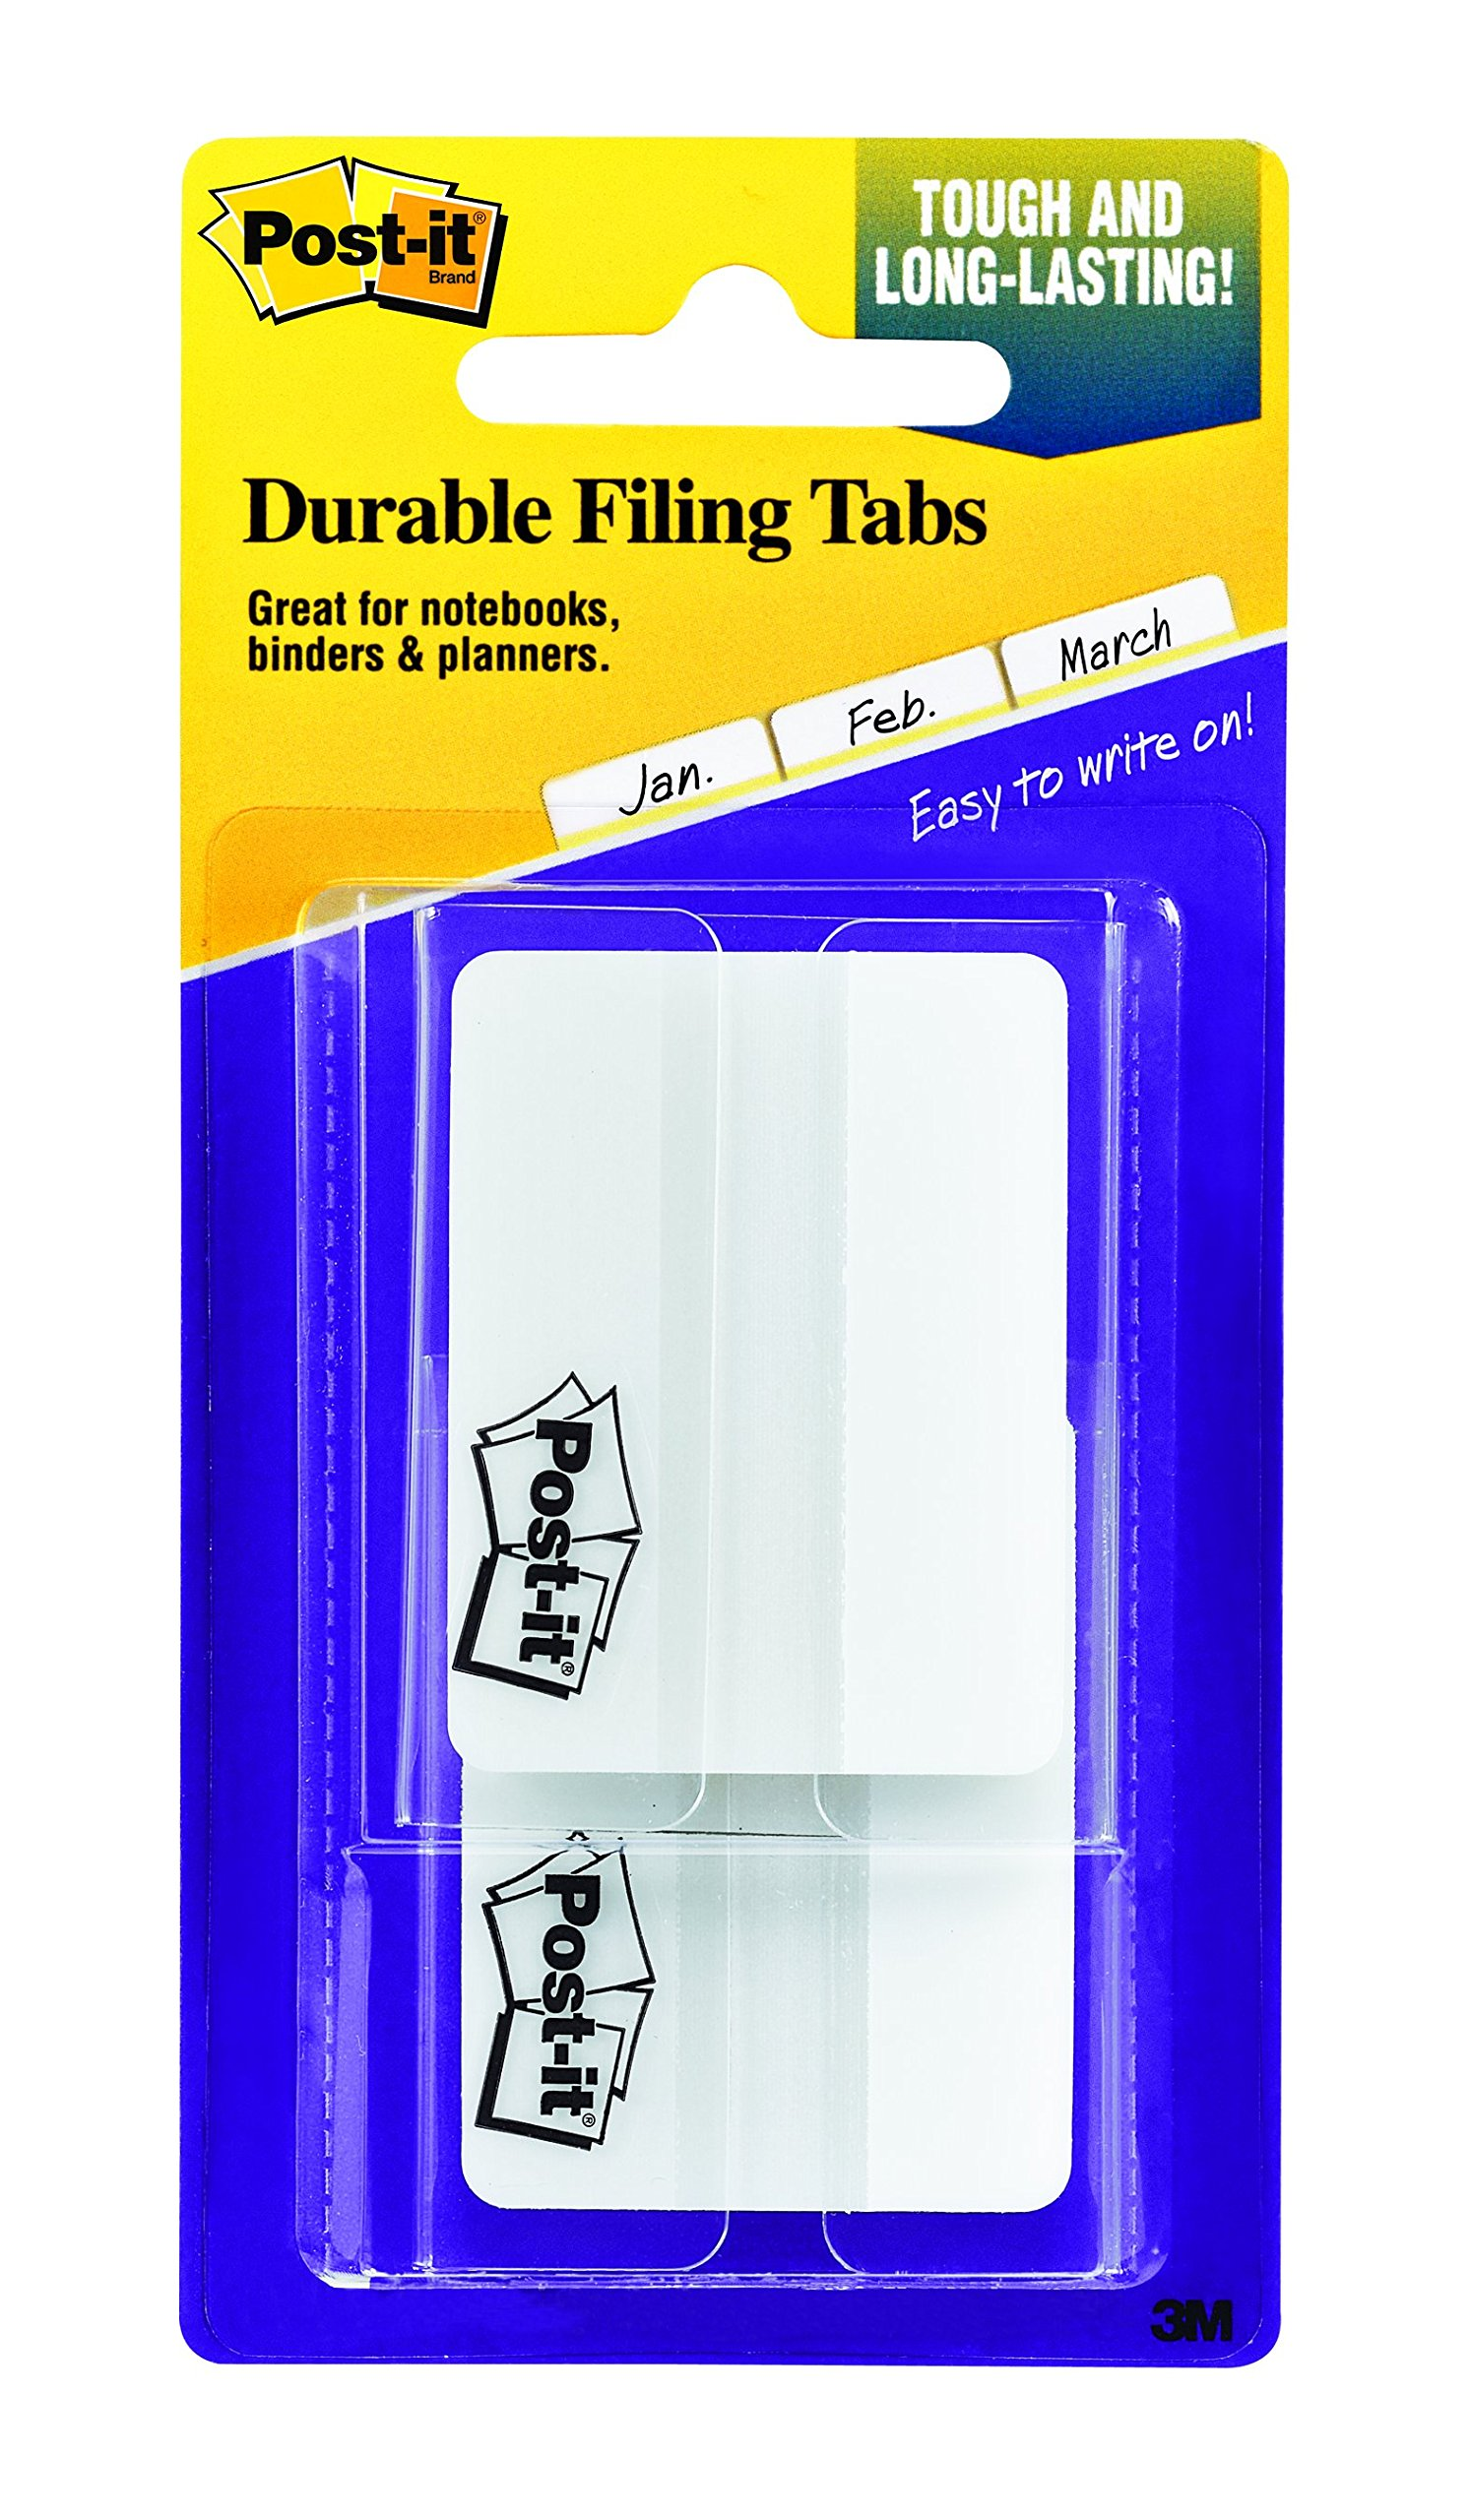 Post-it Tabs, 2 in, Solid, White, Durable, Writable, Repositionable, Great for Binders, Planners, and Notebooks, 25 Tabs/On-the-Go Dispenser, 2 Dispensers/Pack, (686F-50WH)